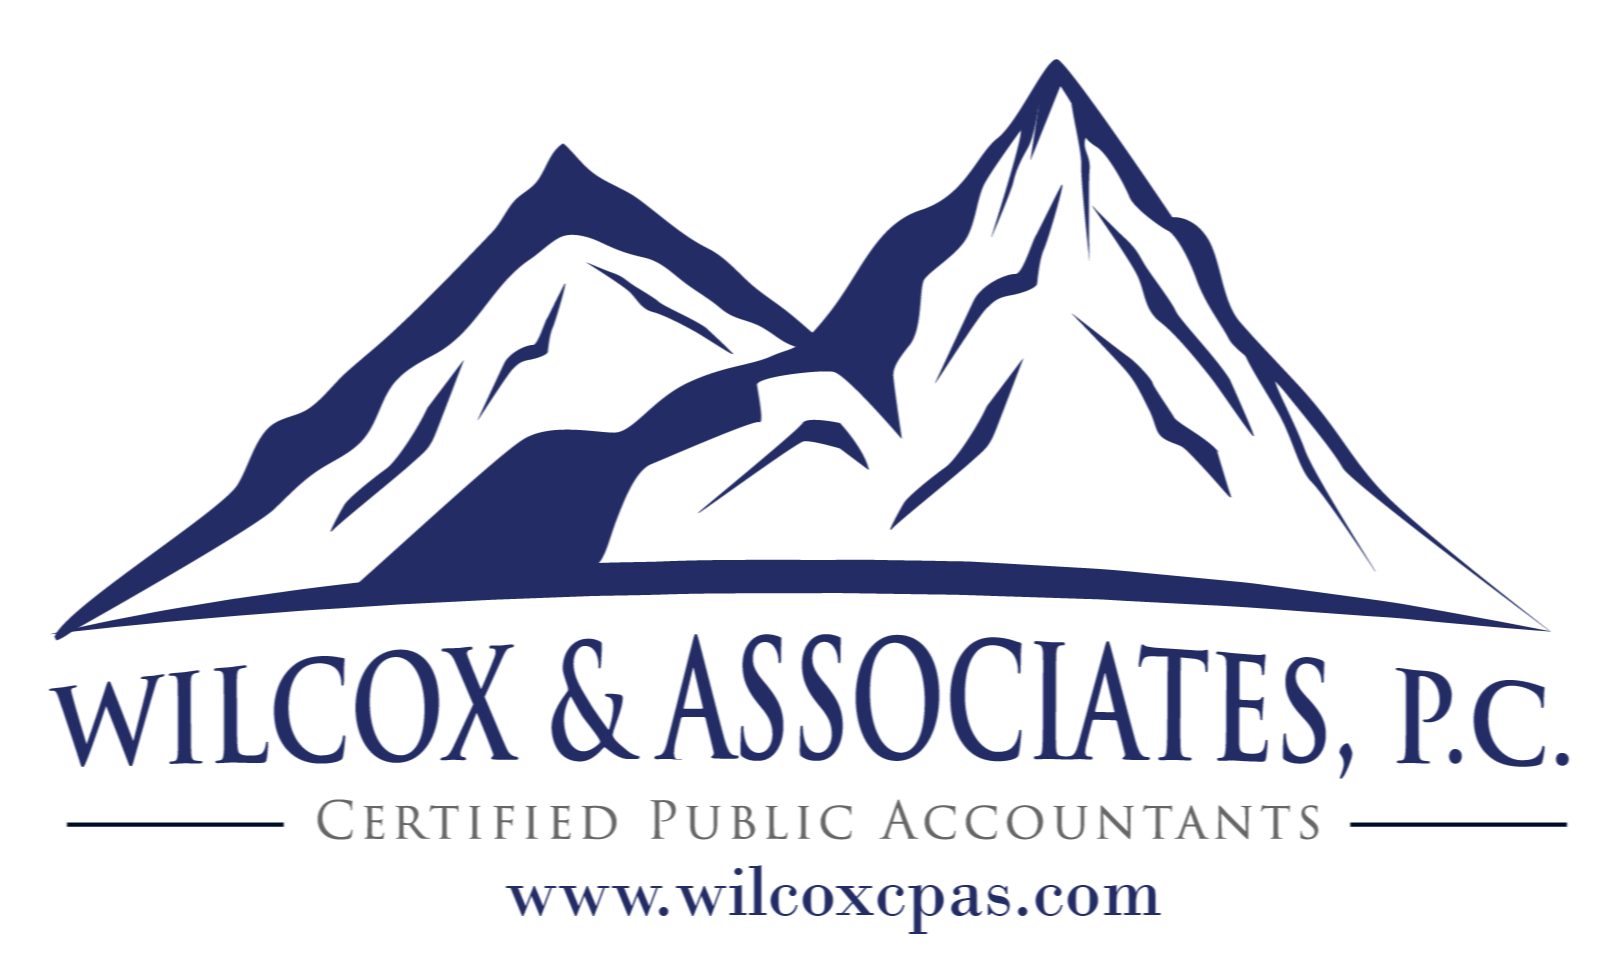 Wilcox & Associates, P.C. Certified Public Accountants